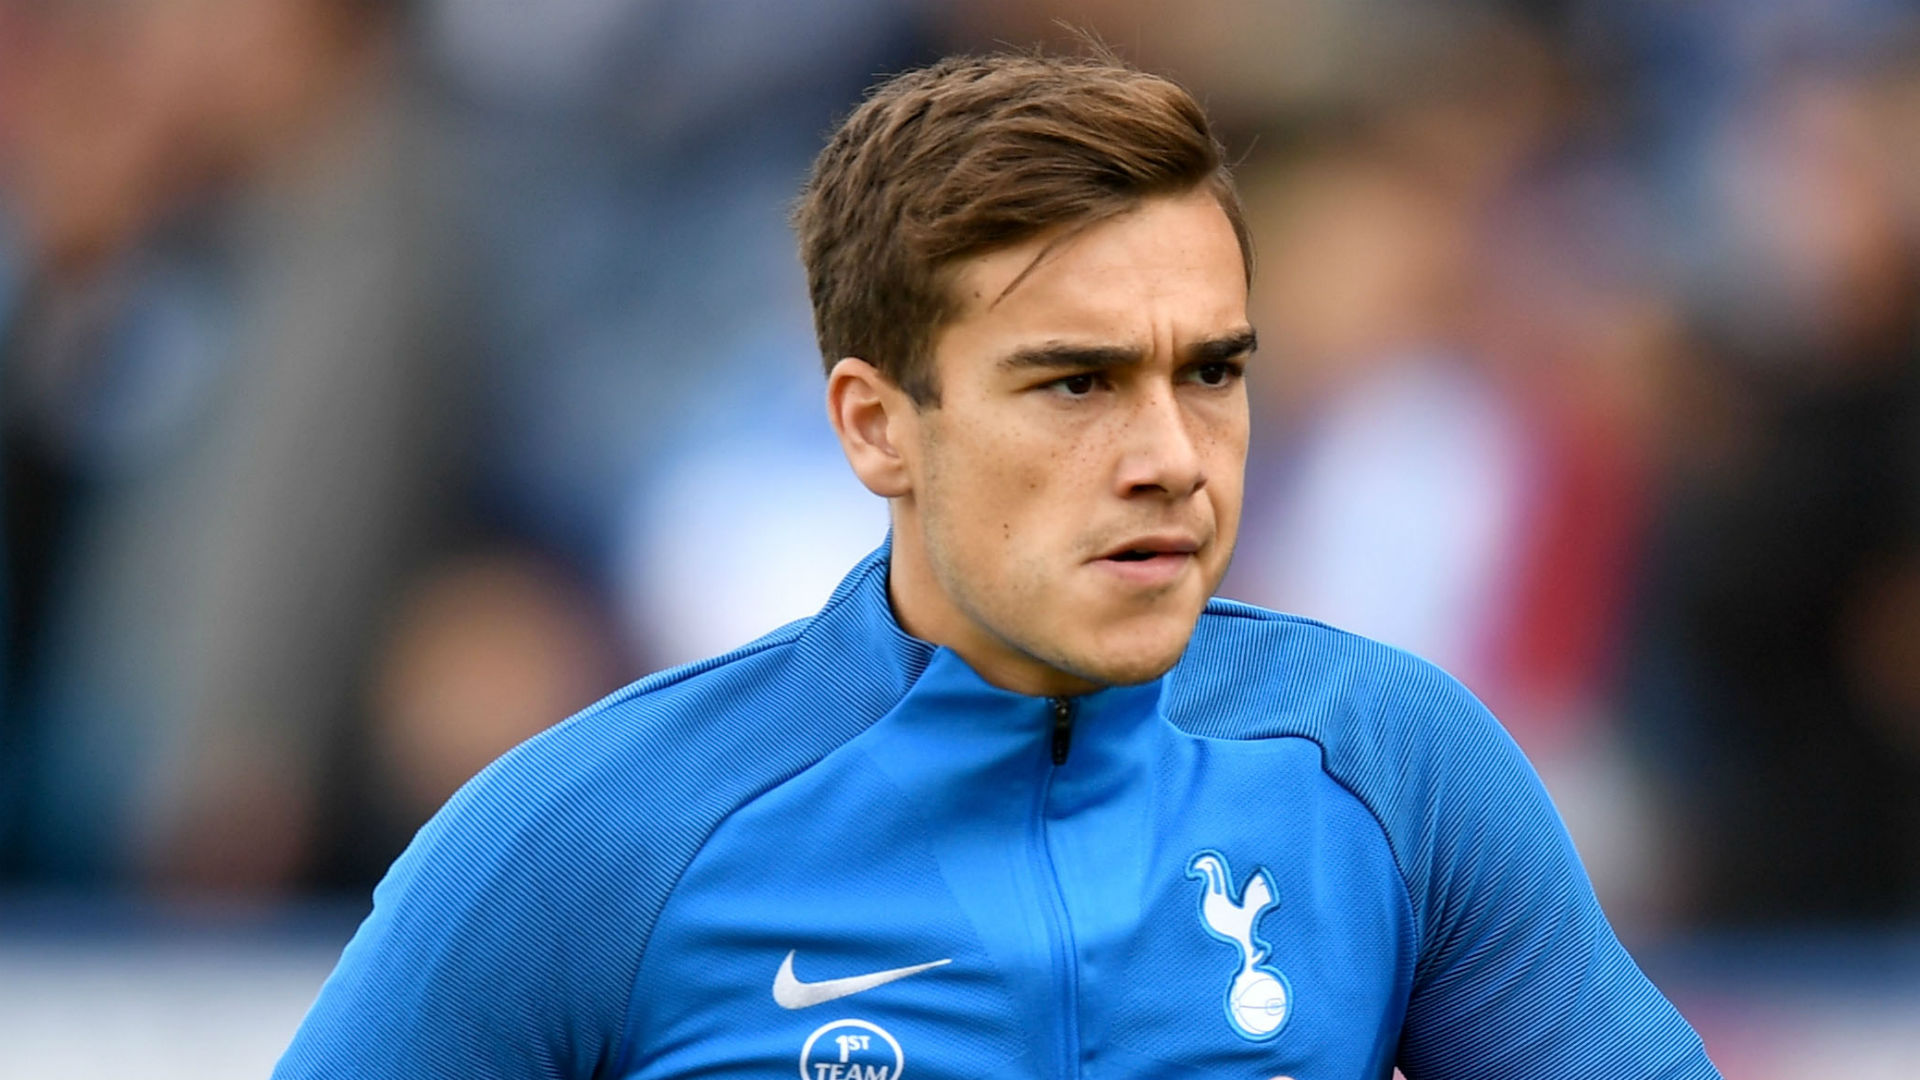 Tottenham confirm Harry Winks has undergone groin surgery